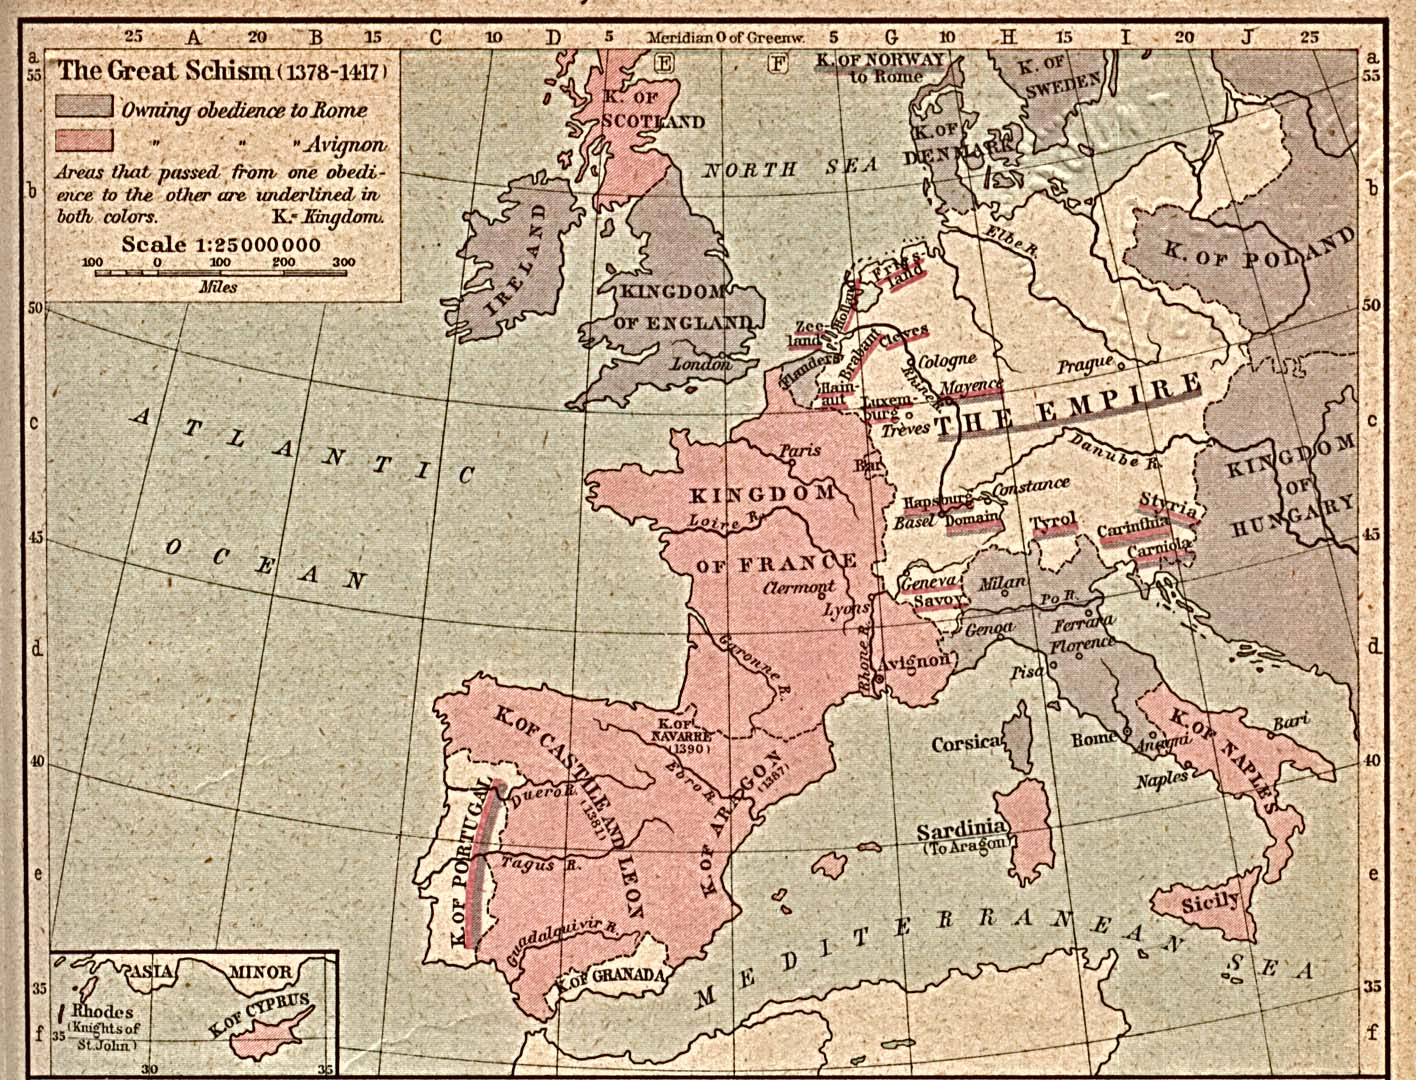 Map of the Great Schism 1378-1417